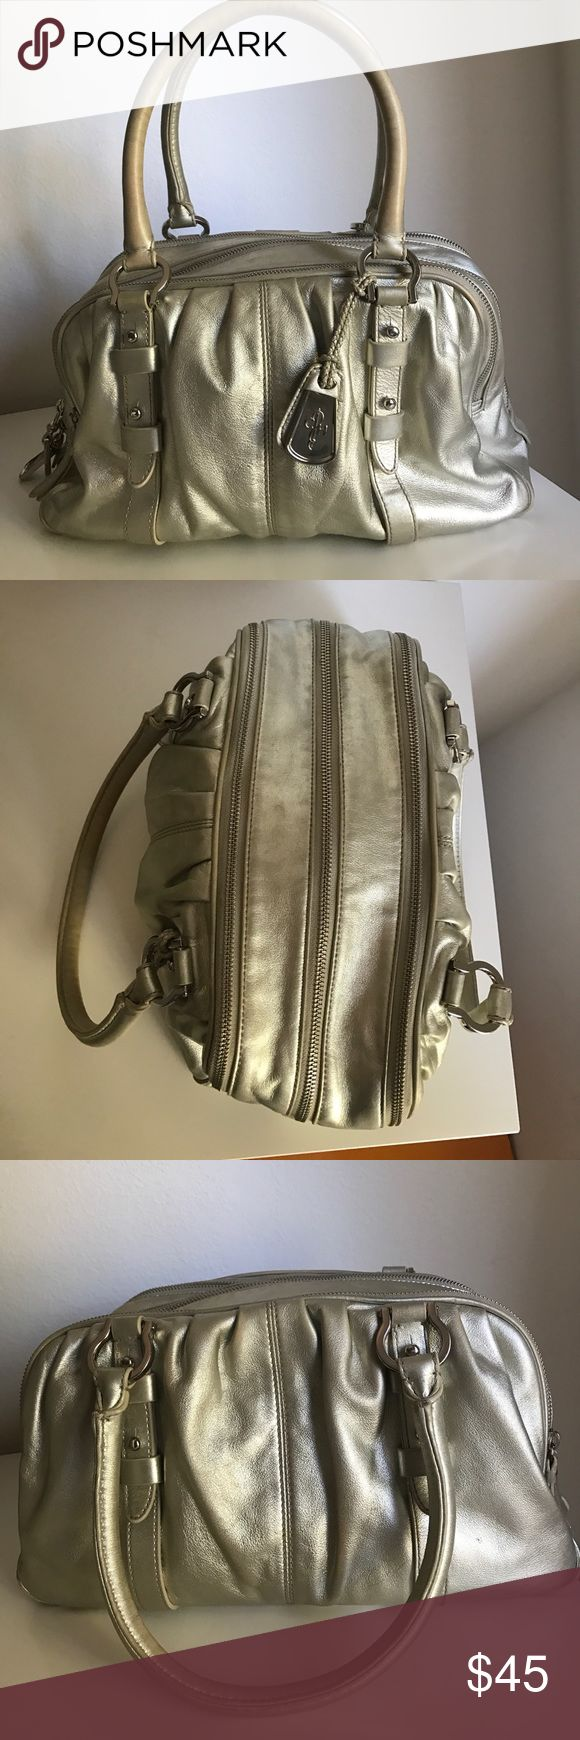 Cole Haan metallic handbag Cole Haan silver metallic handbag. 3 separate zippered compartments for extra storage. Leather. Normal wear and tear. Price firm unless bundled 1008 Cole Haan Bags